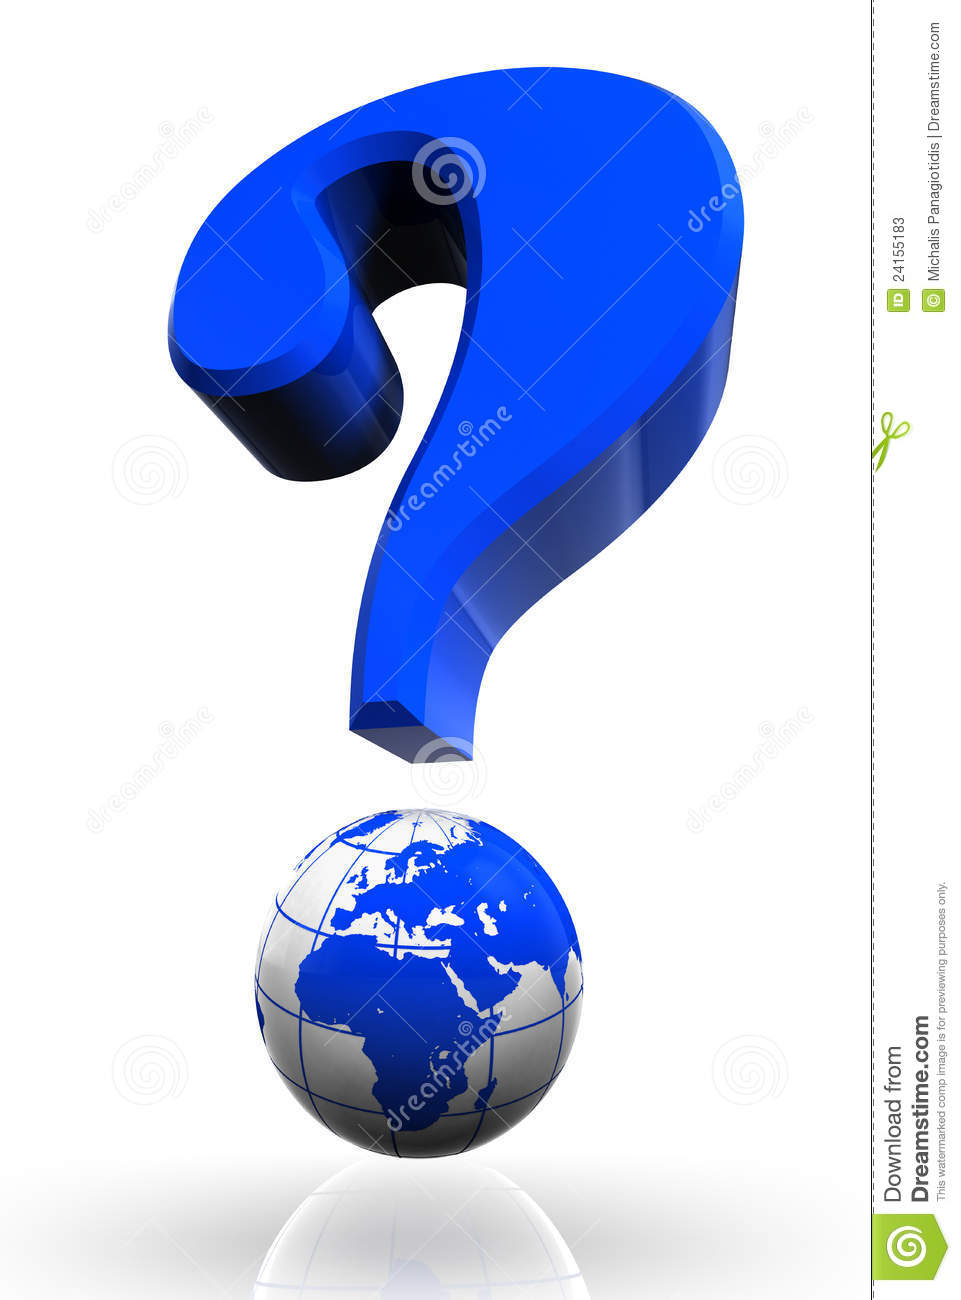 questionmark and globe blue symbol stock illustration